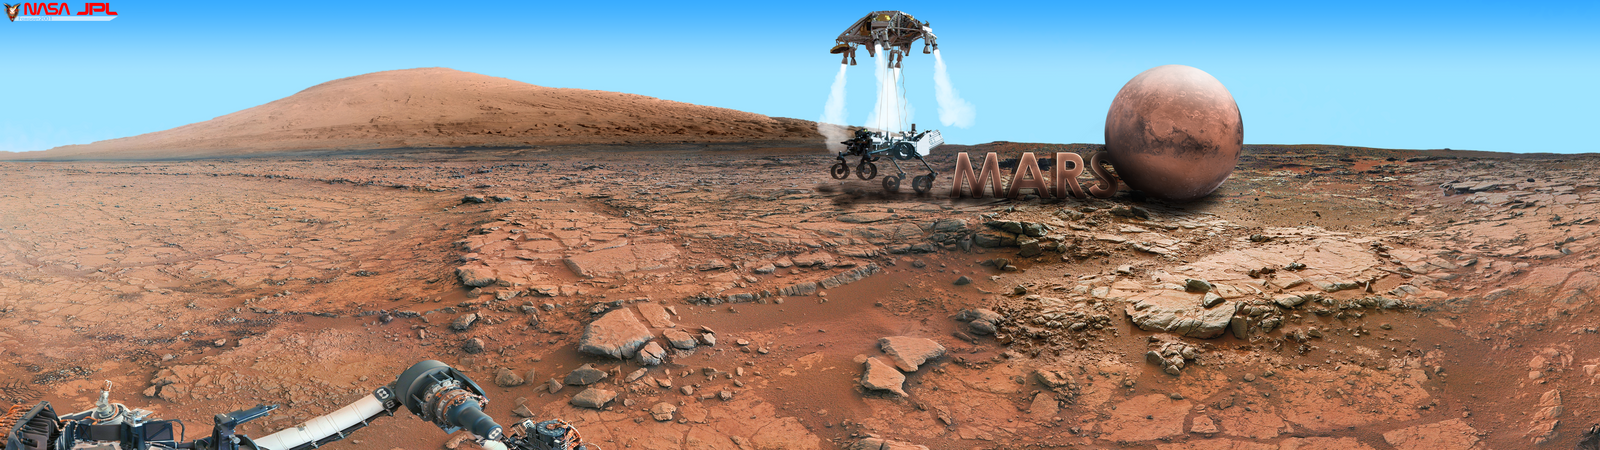 curiosity rover on mars background - photo #10